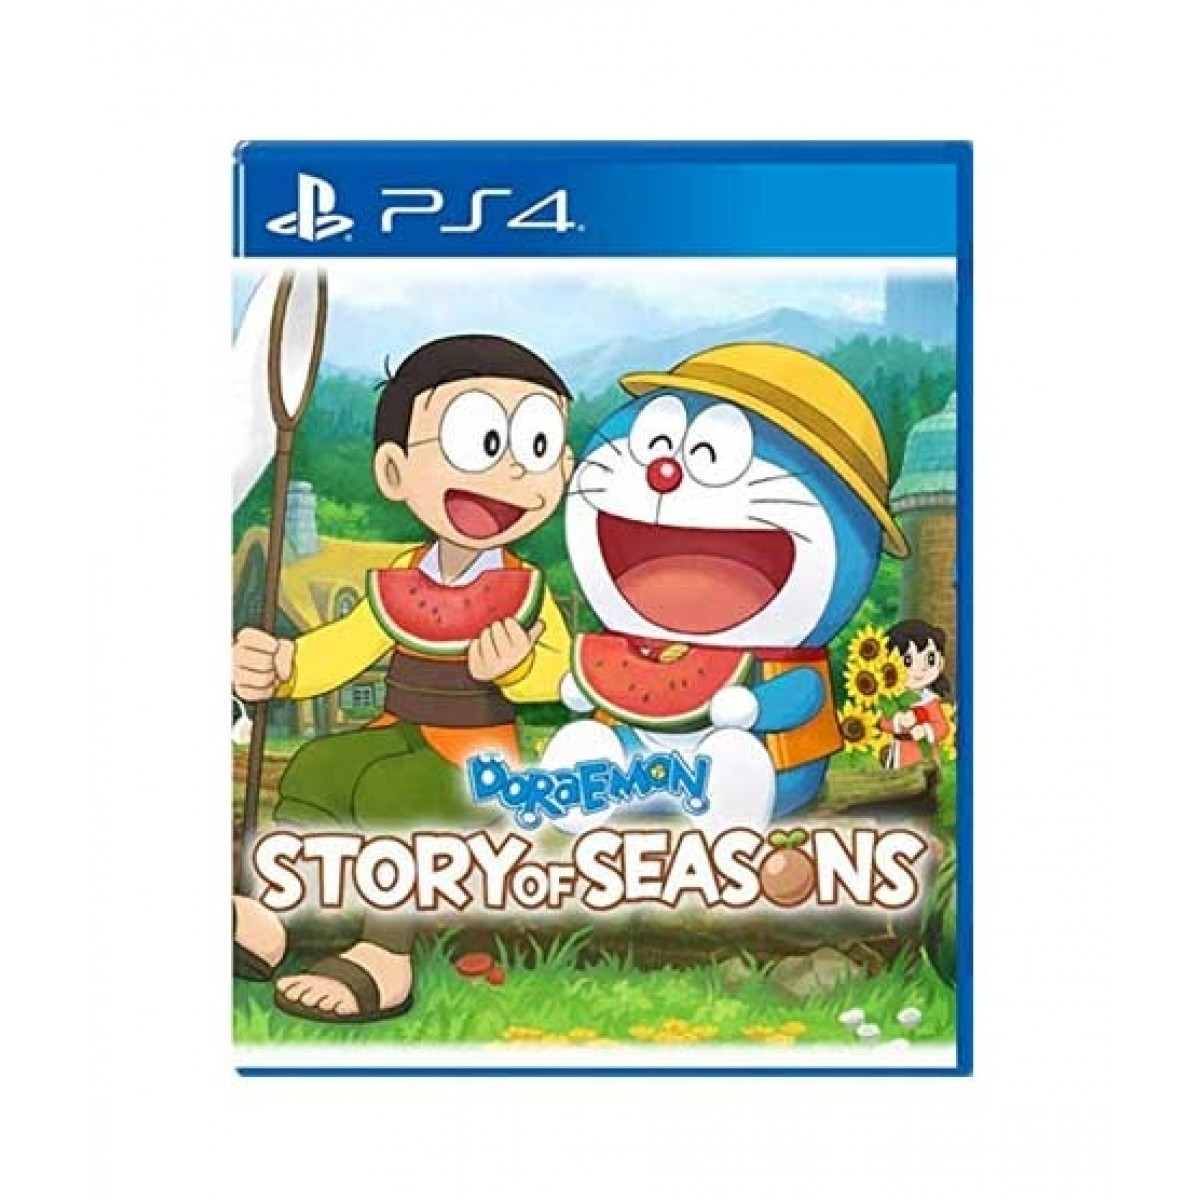 Doraemon Story Of Seasons Game For PS4